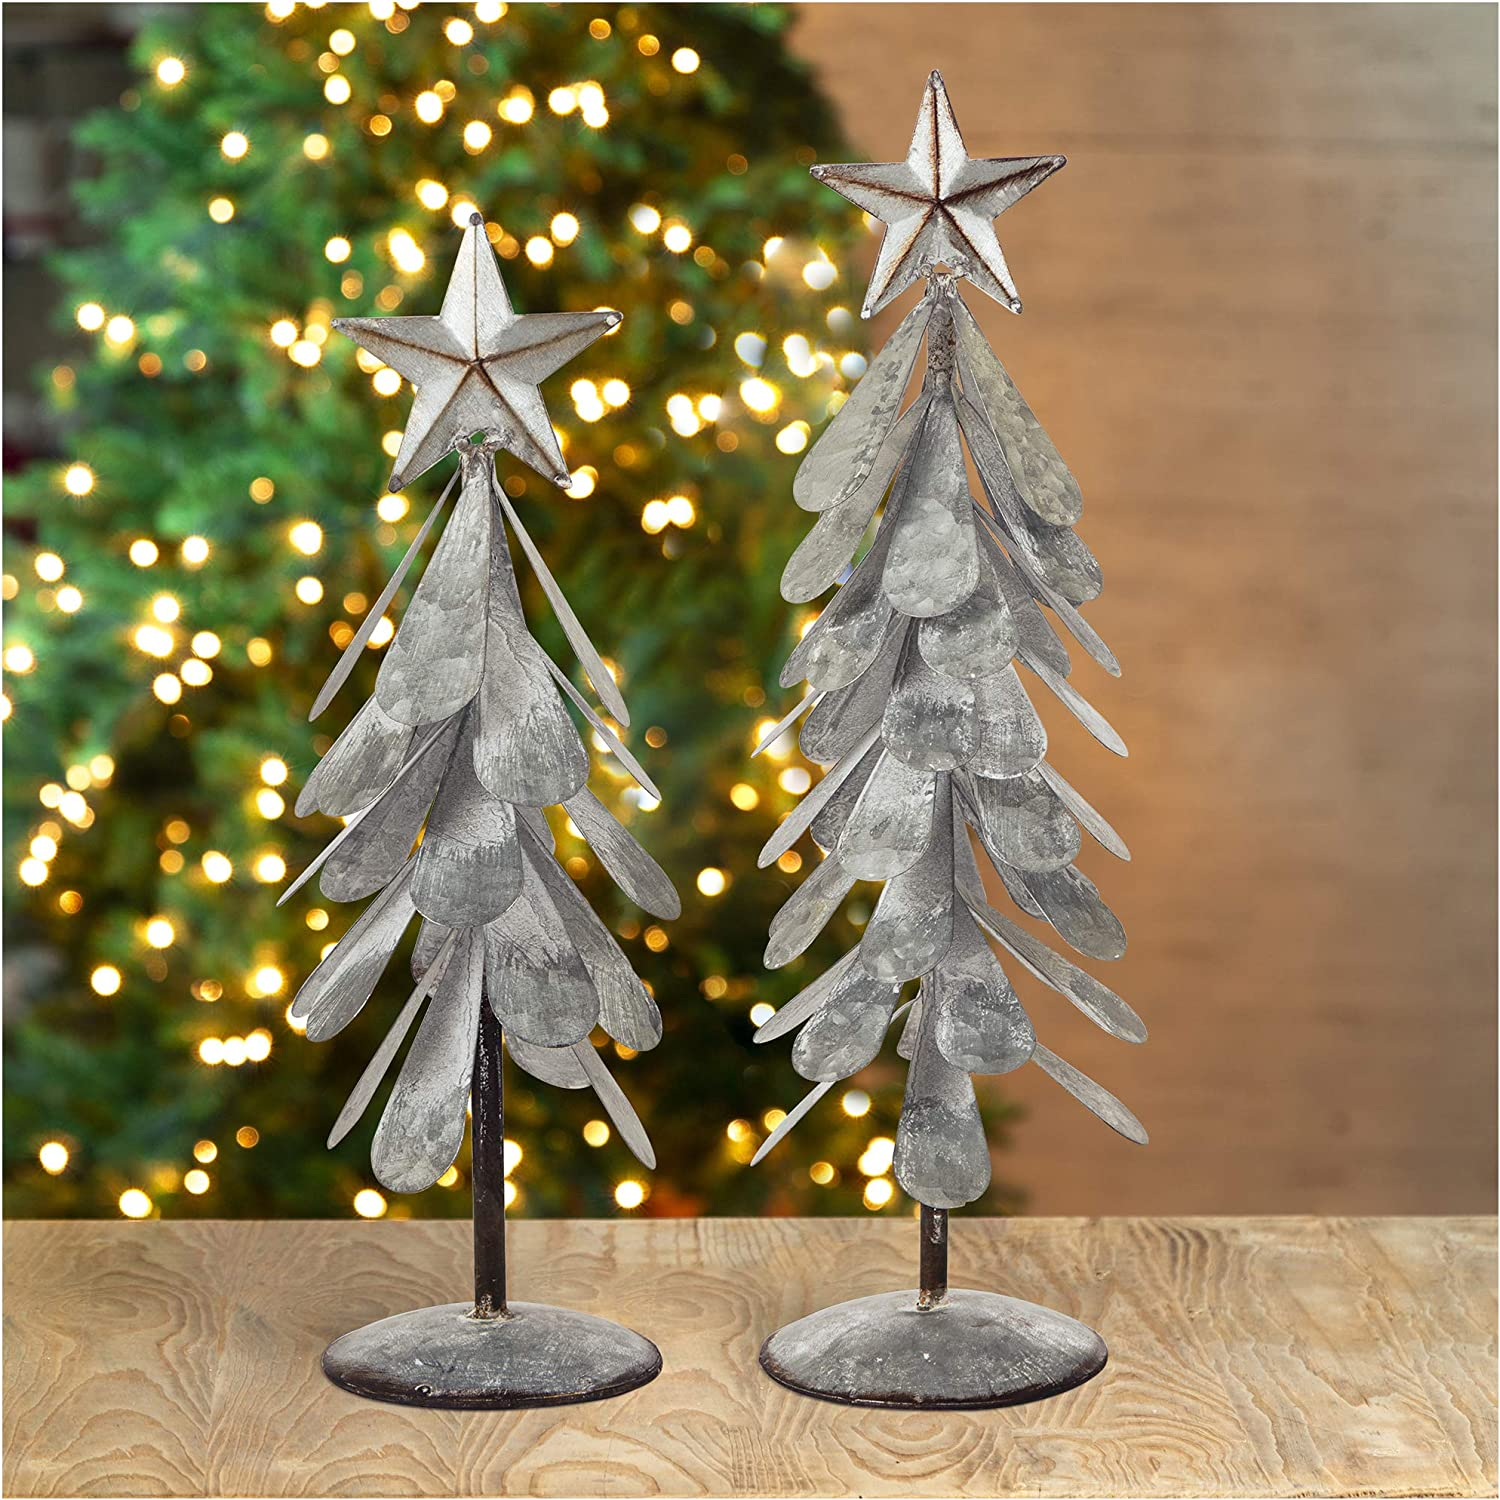 glitzhome Galvanized Metal Christmas Ornament Indianapolis Mall NEW before selling Display Tree Table